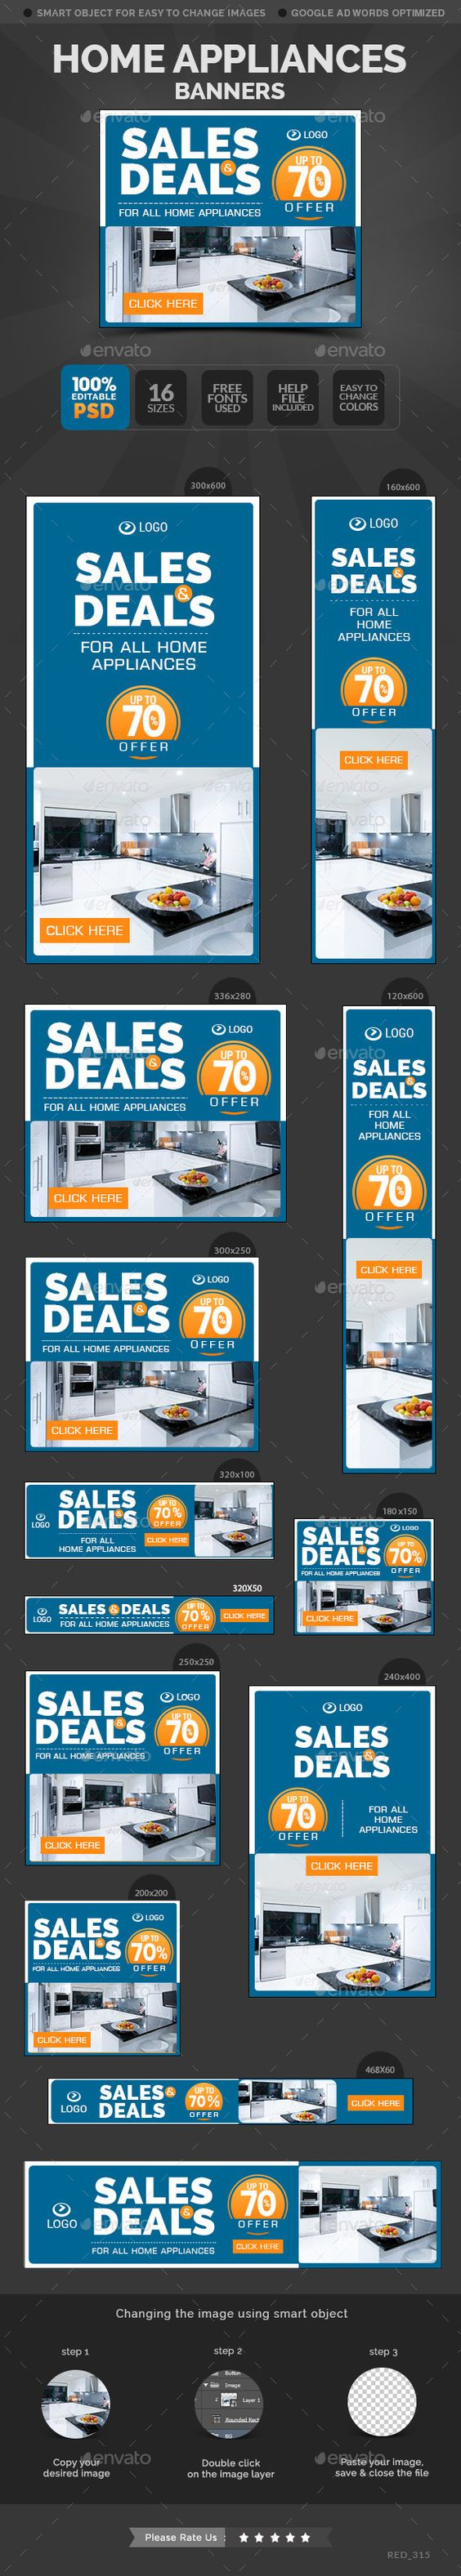 Home Appliances Banners Template #design #web Download: http://graphicriver.net/item/home-appliances-banners/11932757?ref=ksioks